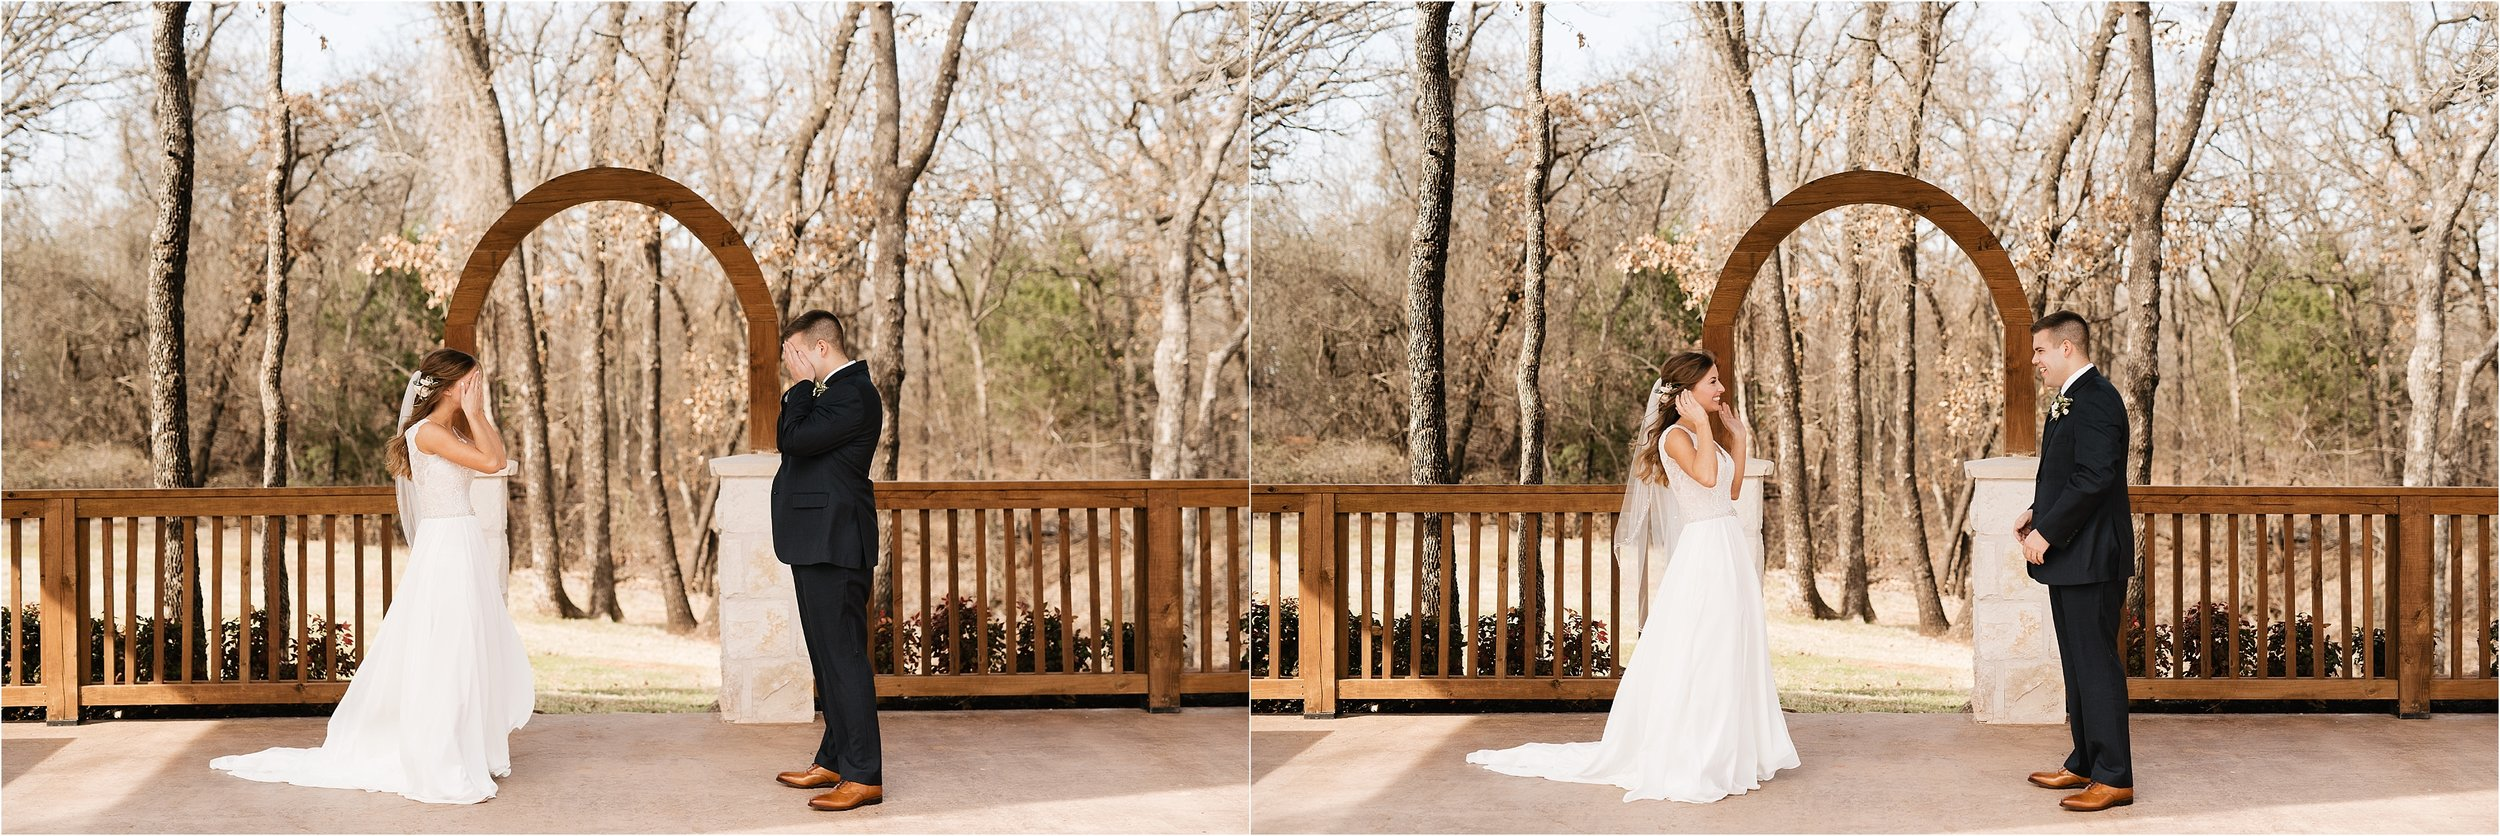 oklahoma wedding photography first look bride groom wedding day sweet the springs norman